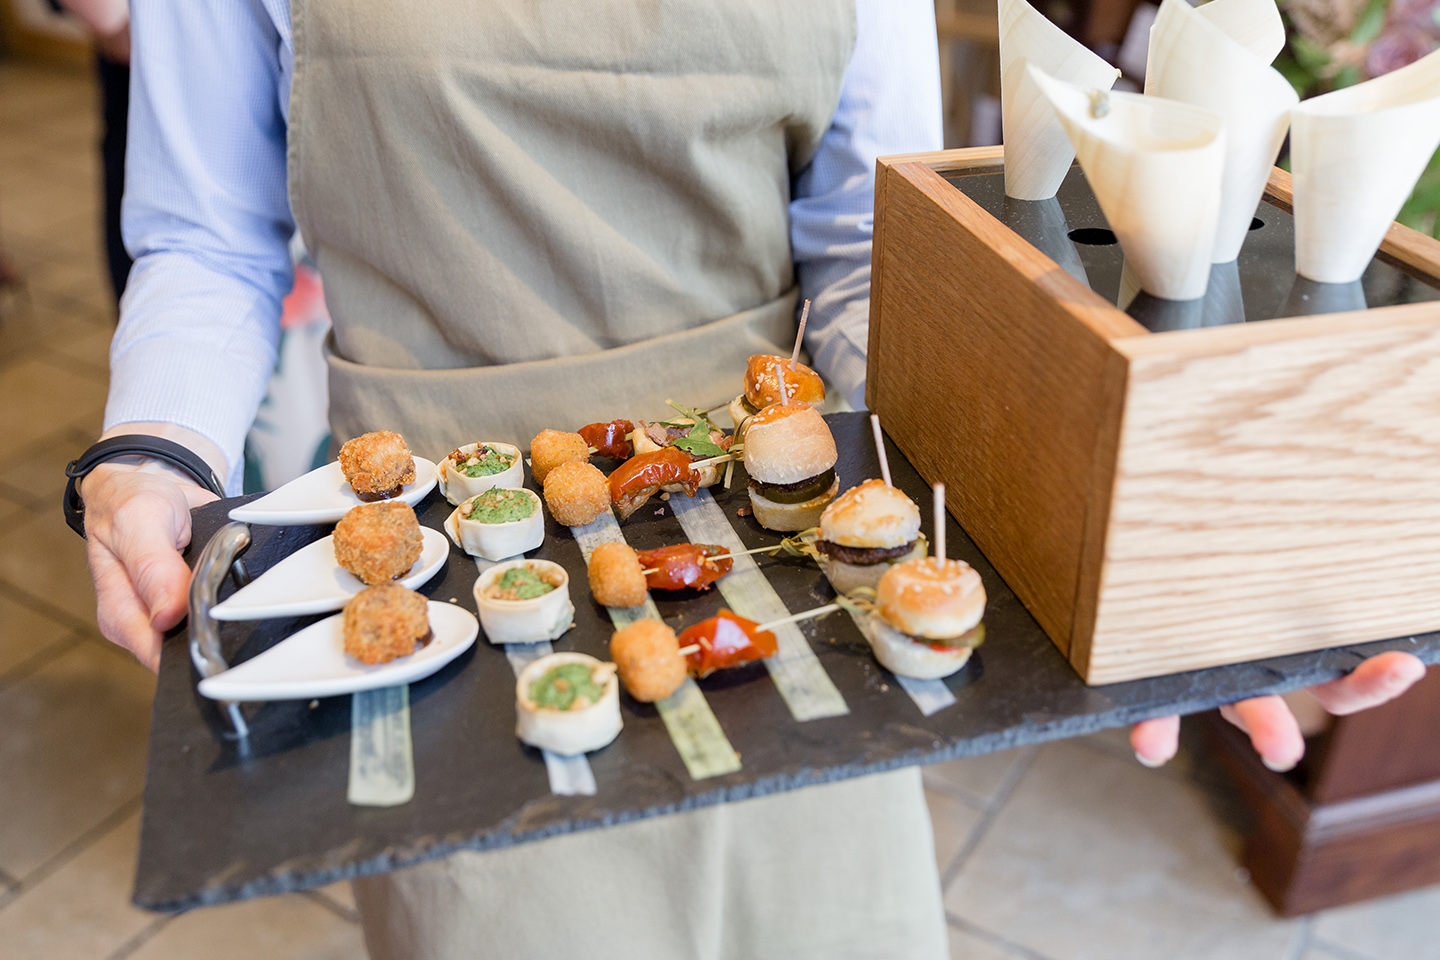 Wedding canapes are served during a summer wedding reception at Bassmead Manor Barns